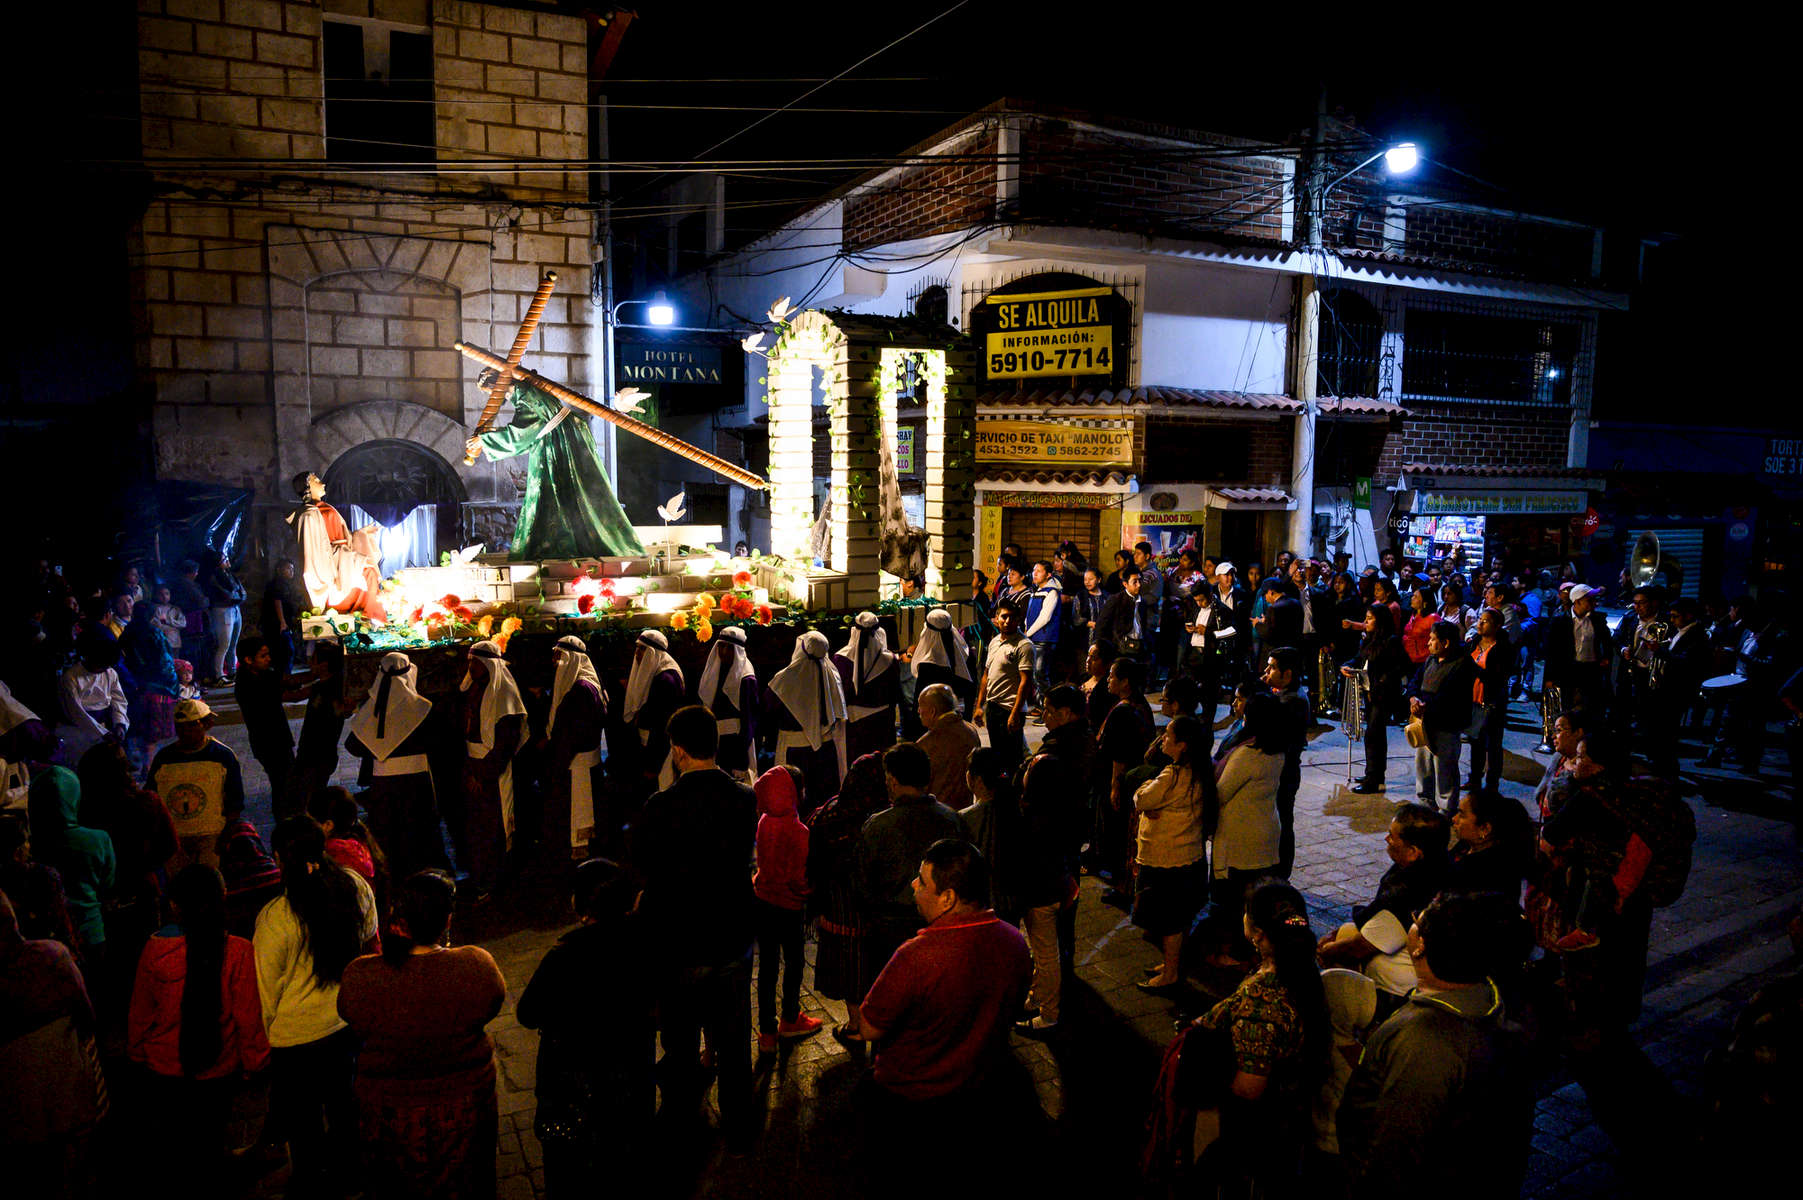 Worshipers gather near the Iglesia San Francisco in Panajachel at the end of a procession on April 12th, 2019 in Panajachel, Guatemala.